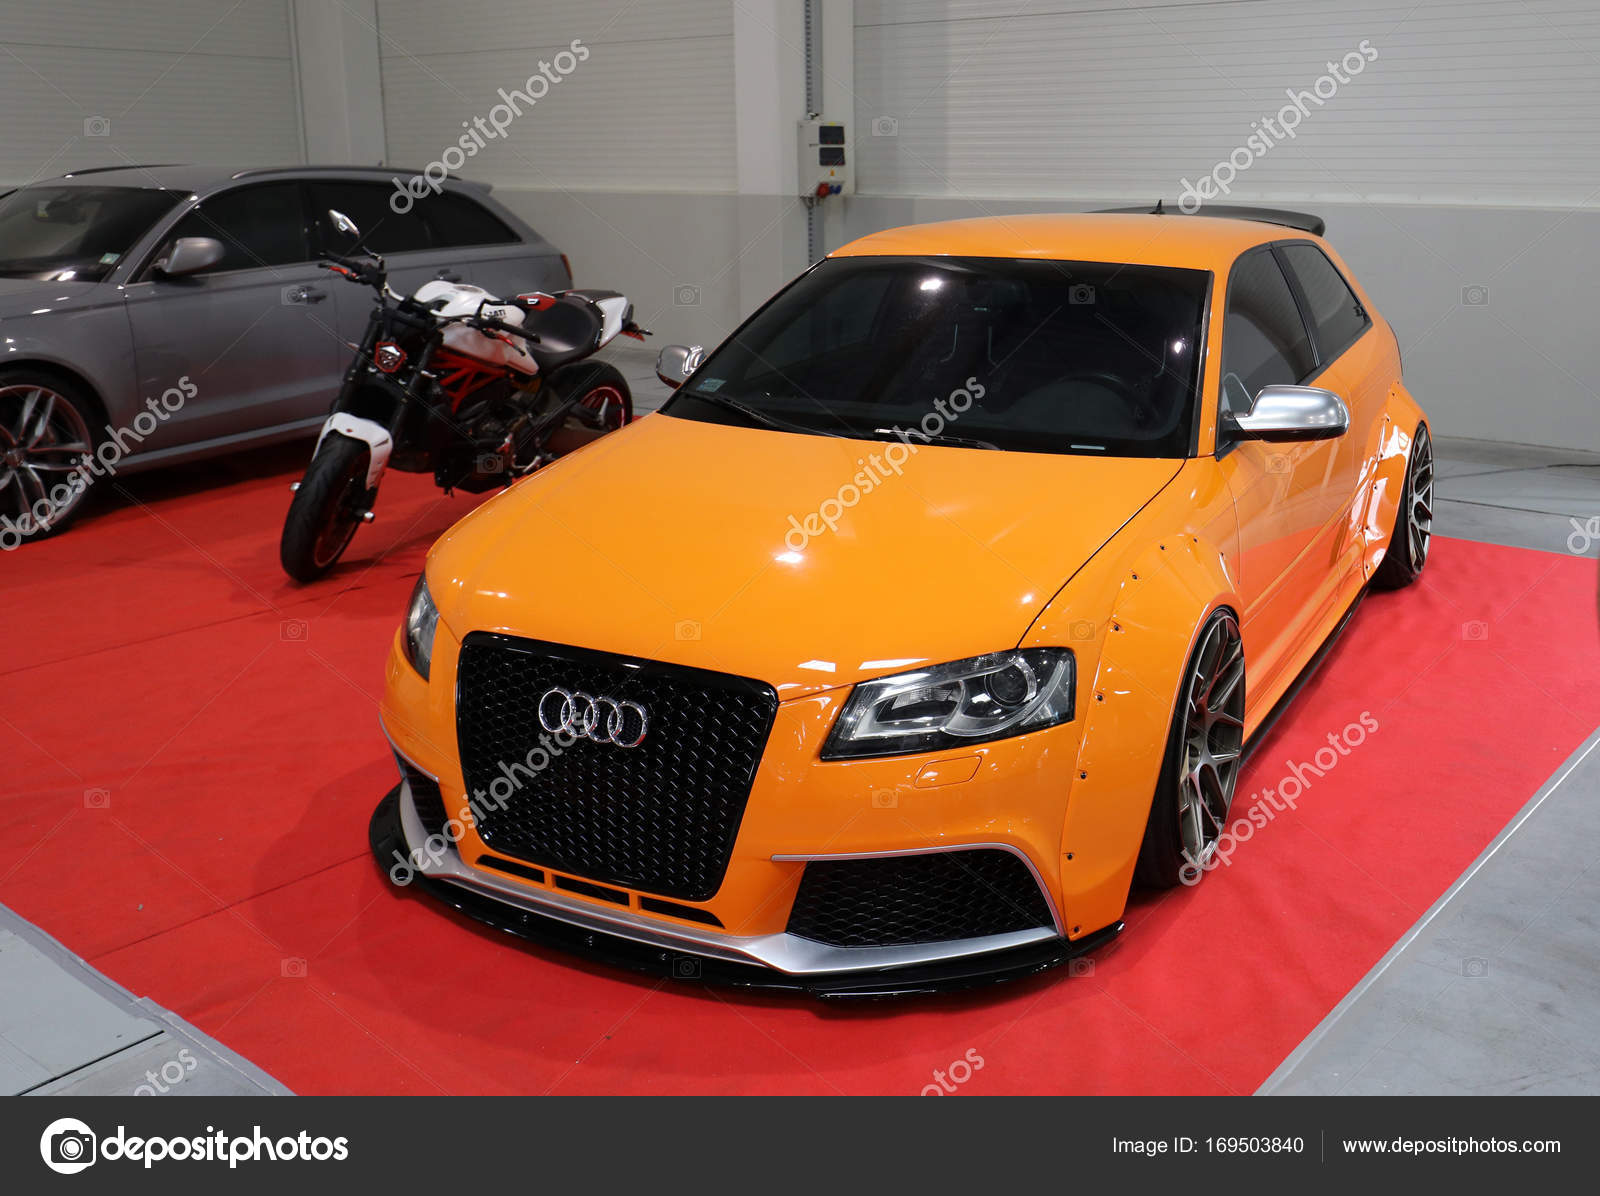 Engine Tuning Audi Displayed At 3rd Edition Of Moto Show In Krakow